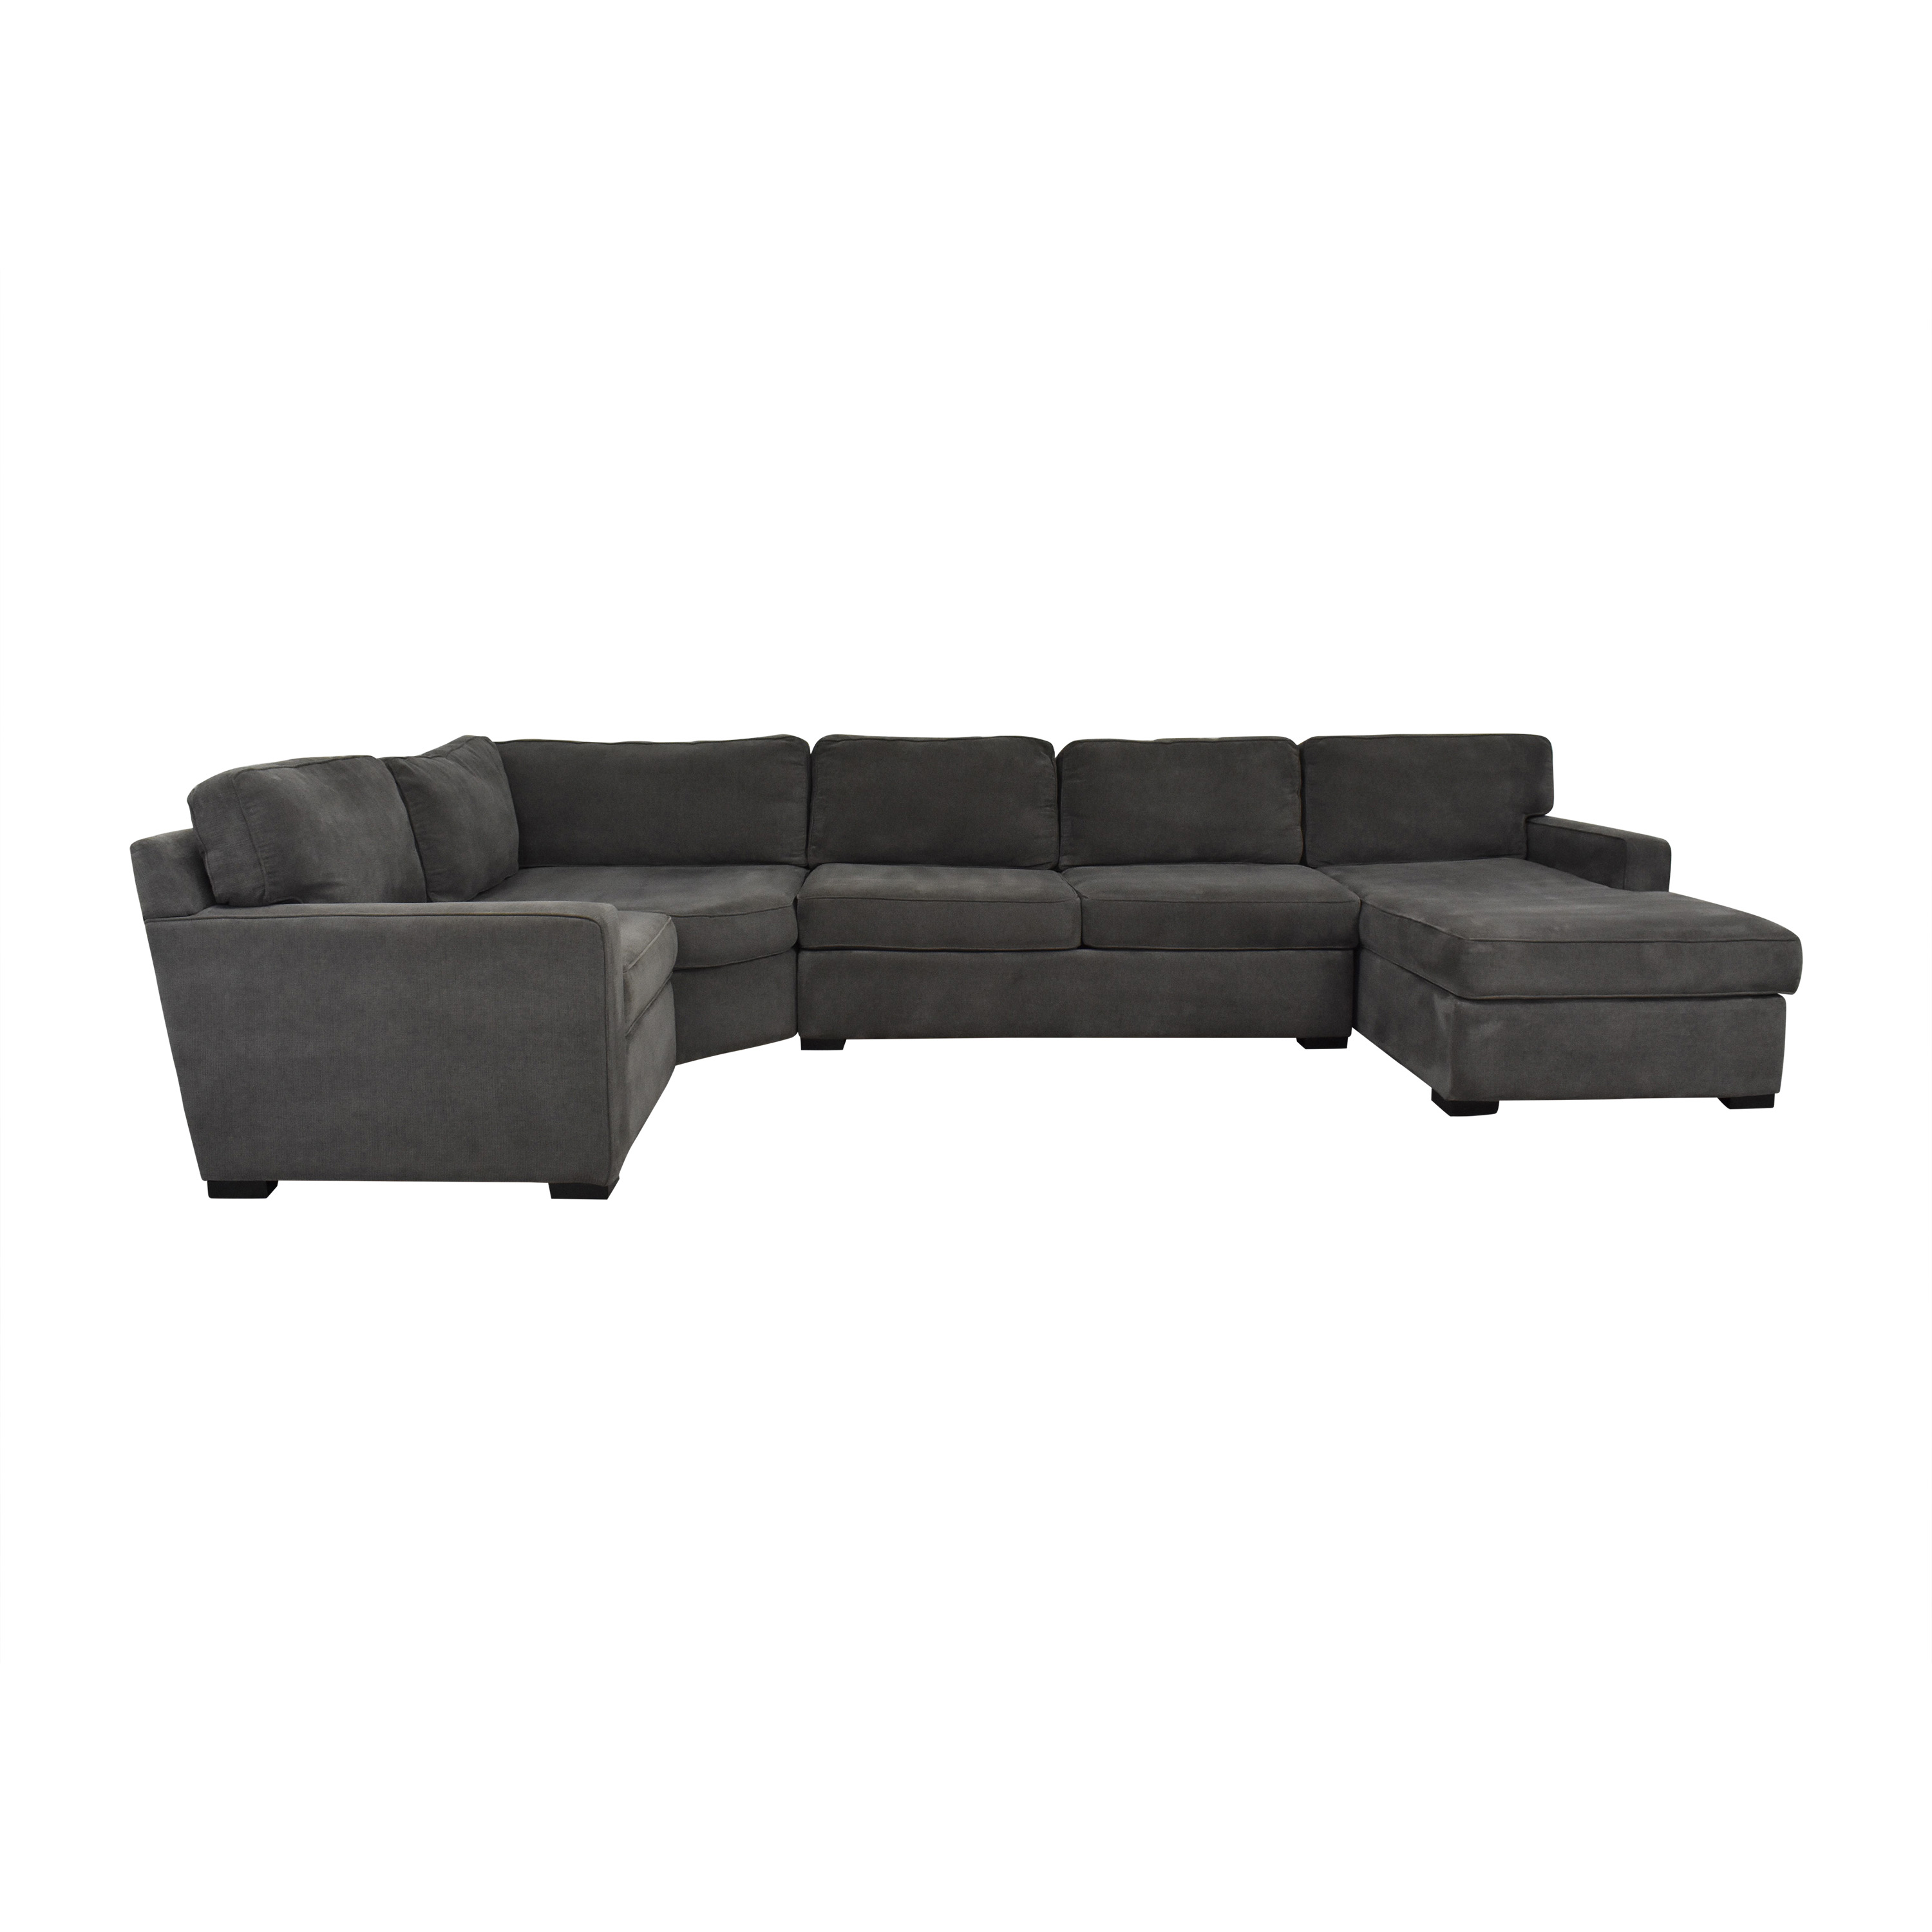 Macy's Macy's Radley Sectional Sofa with Chaise discount